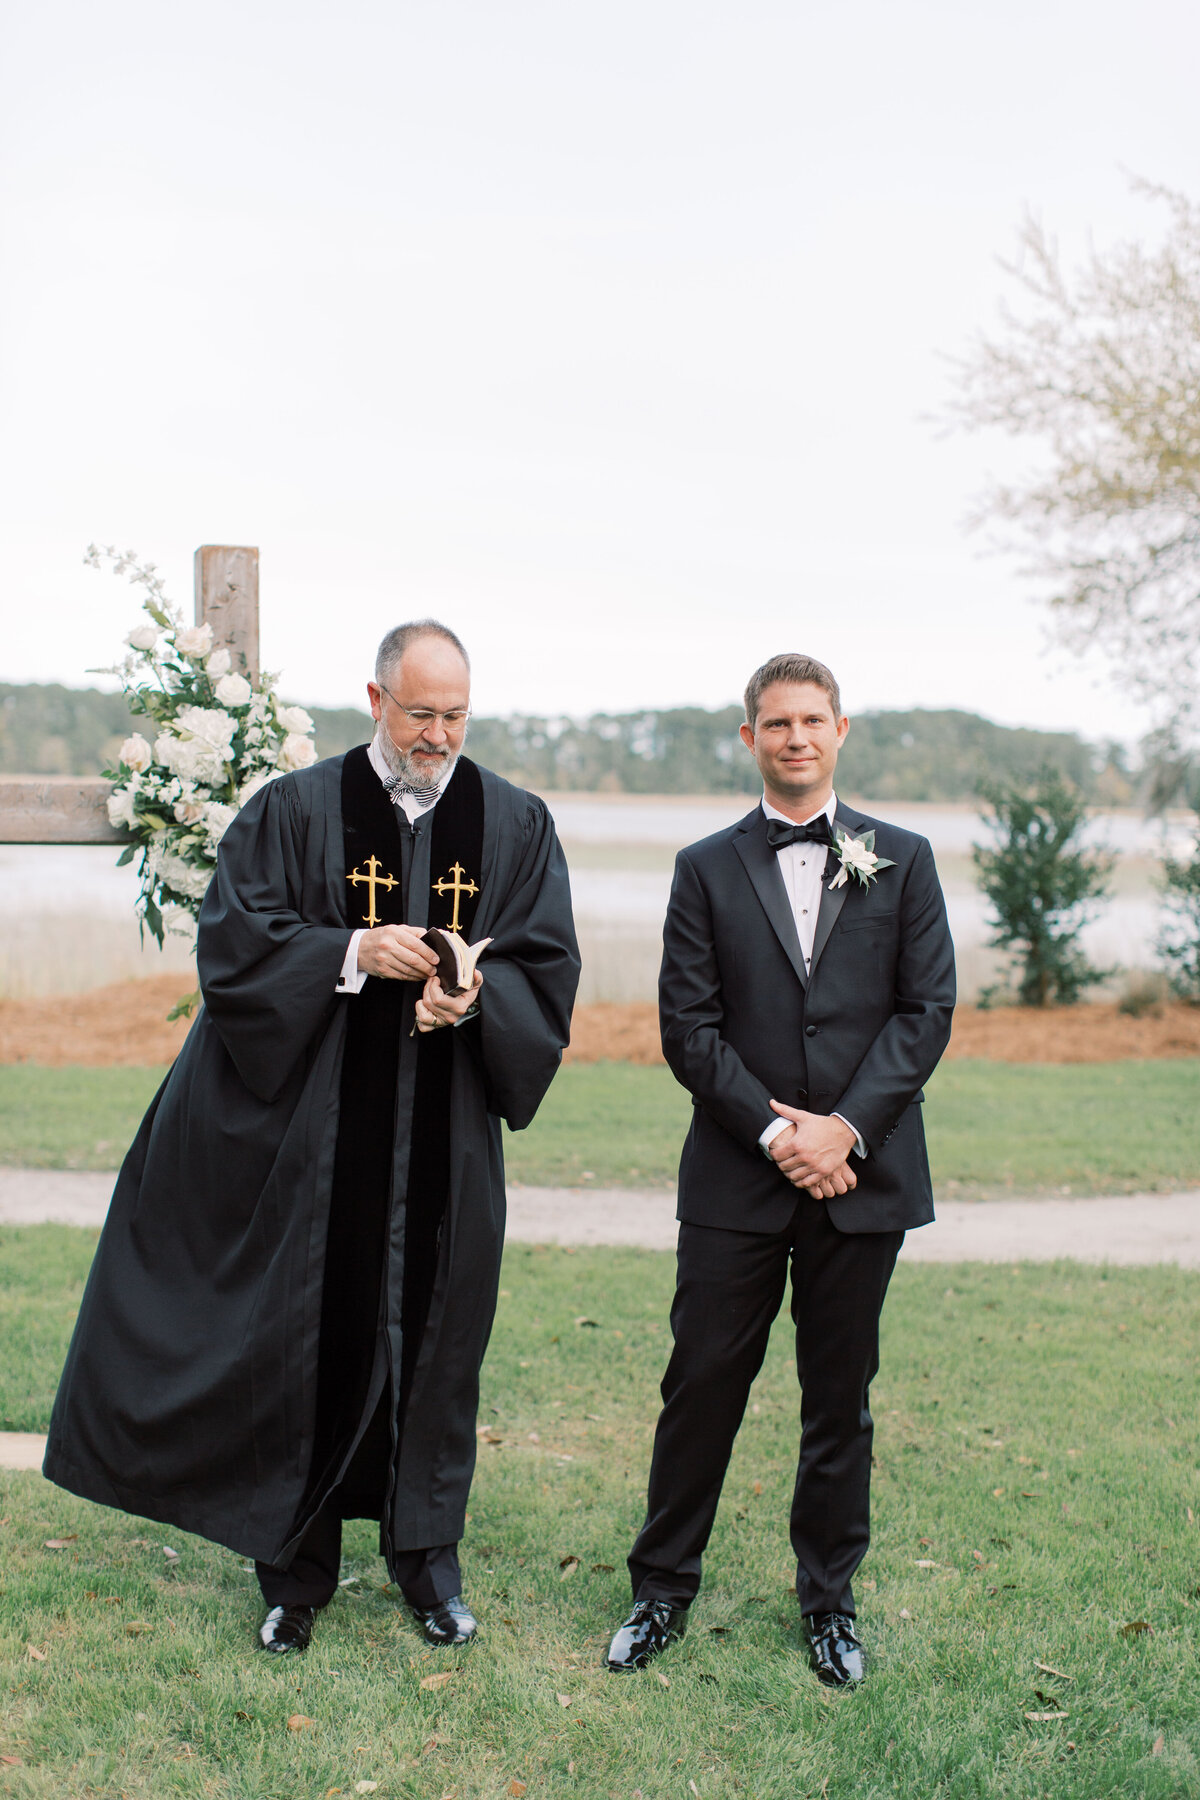 Powell_Oldfield_River_Club_Bluffton_South_Carolina_Beaufort_Savannah_Wedding_Jacksonville_Florida_Devon_Donnahoo_Photography_0516